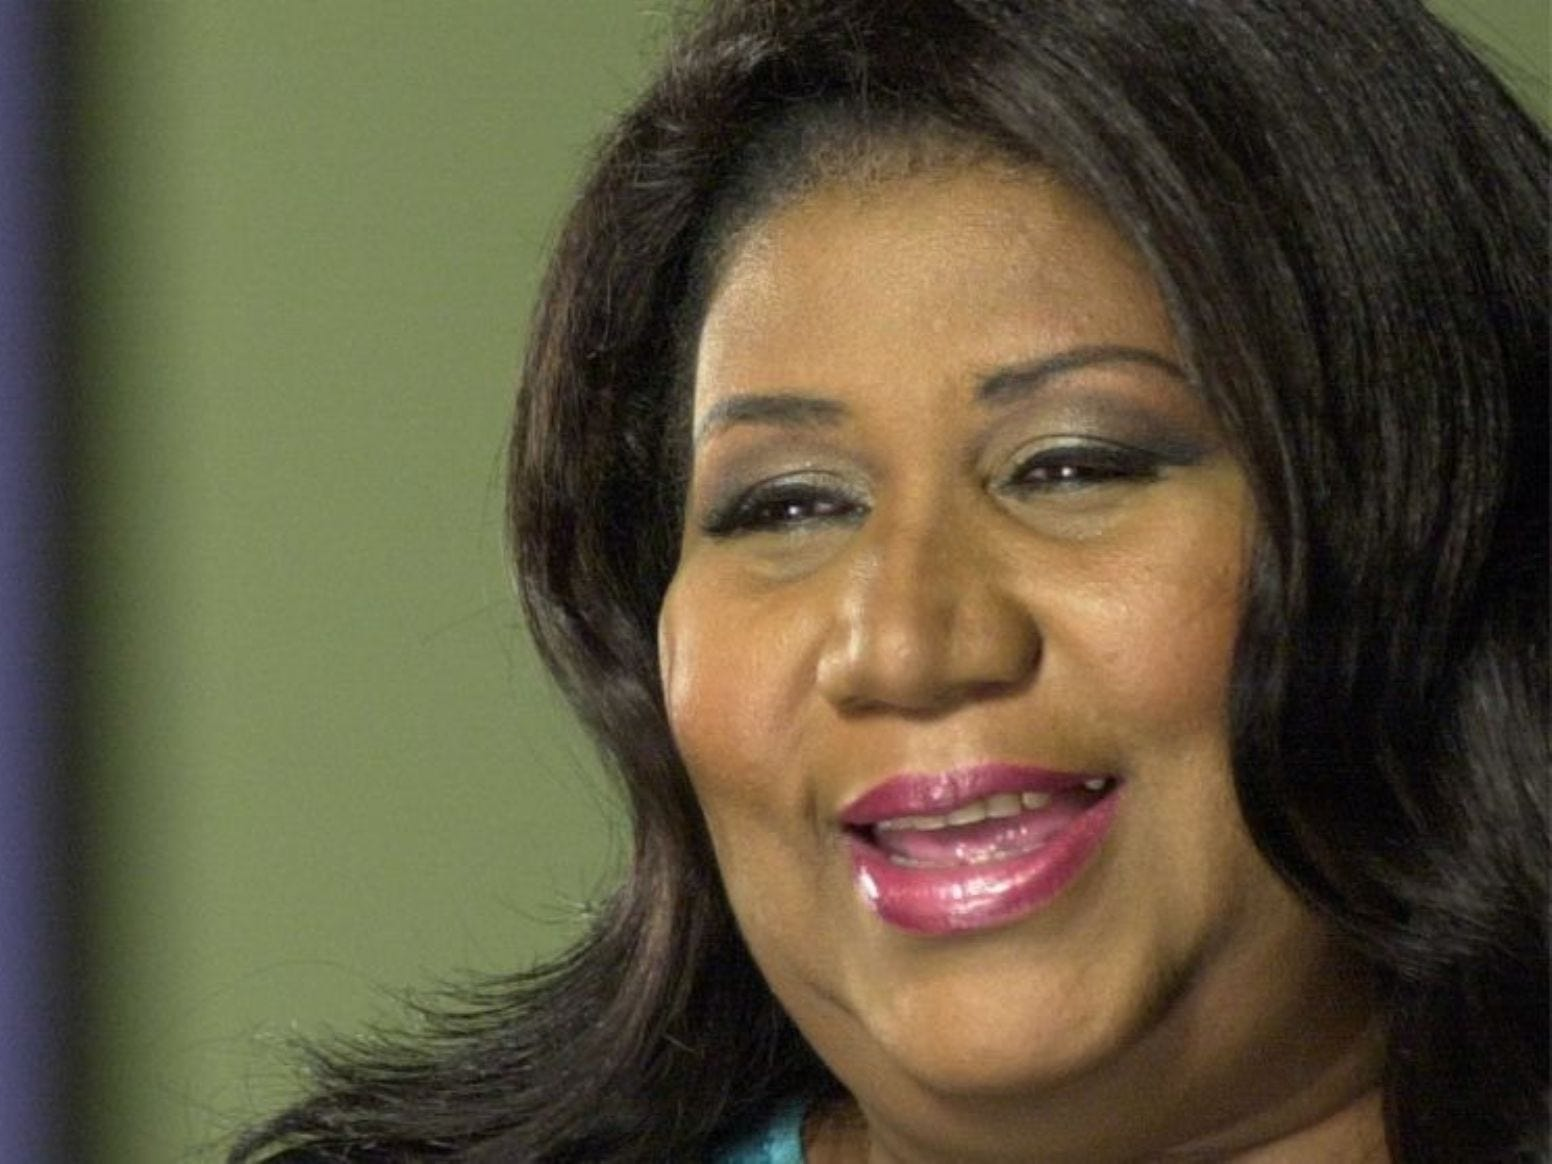 "Singer Aretha Franklin is shown in Detroit, Mich., March 17, 2001, in this photo provided by VH1. Franklin and her music will be feted by the likes of Janet Jackson, Mary J. Blige and Jill Scott on VH1's """"Divas"""" show, in a concert which will air live from New York's Radio City Music Hall scheduled for April 10."